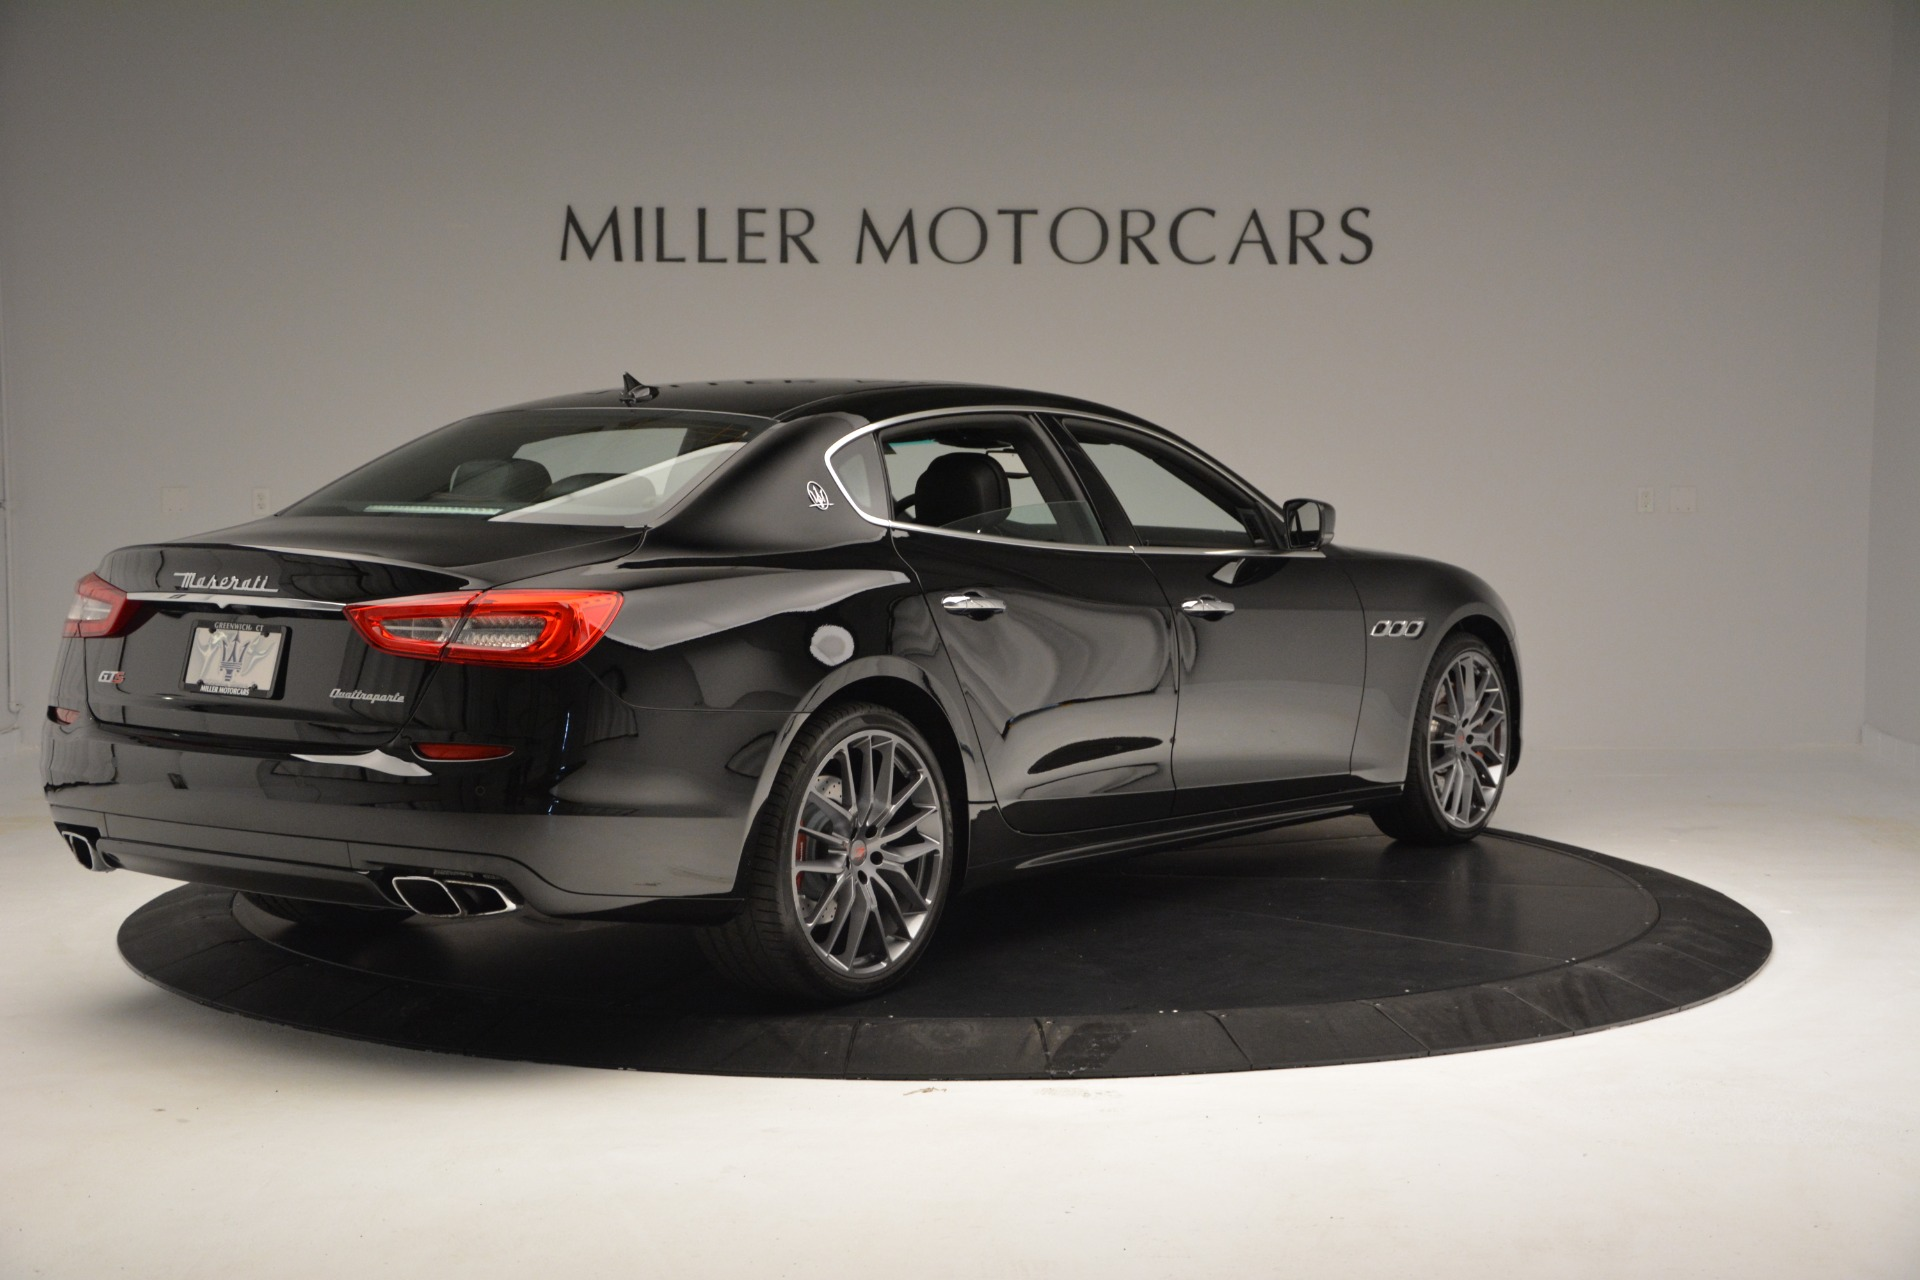 Used 2015 Maserati Quattroporte GTS For Sale In Westport, CT 2993_p7